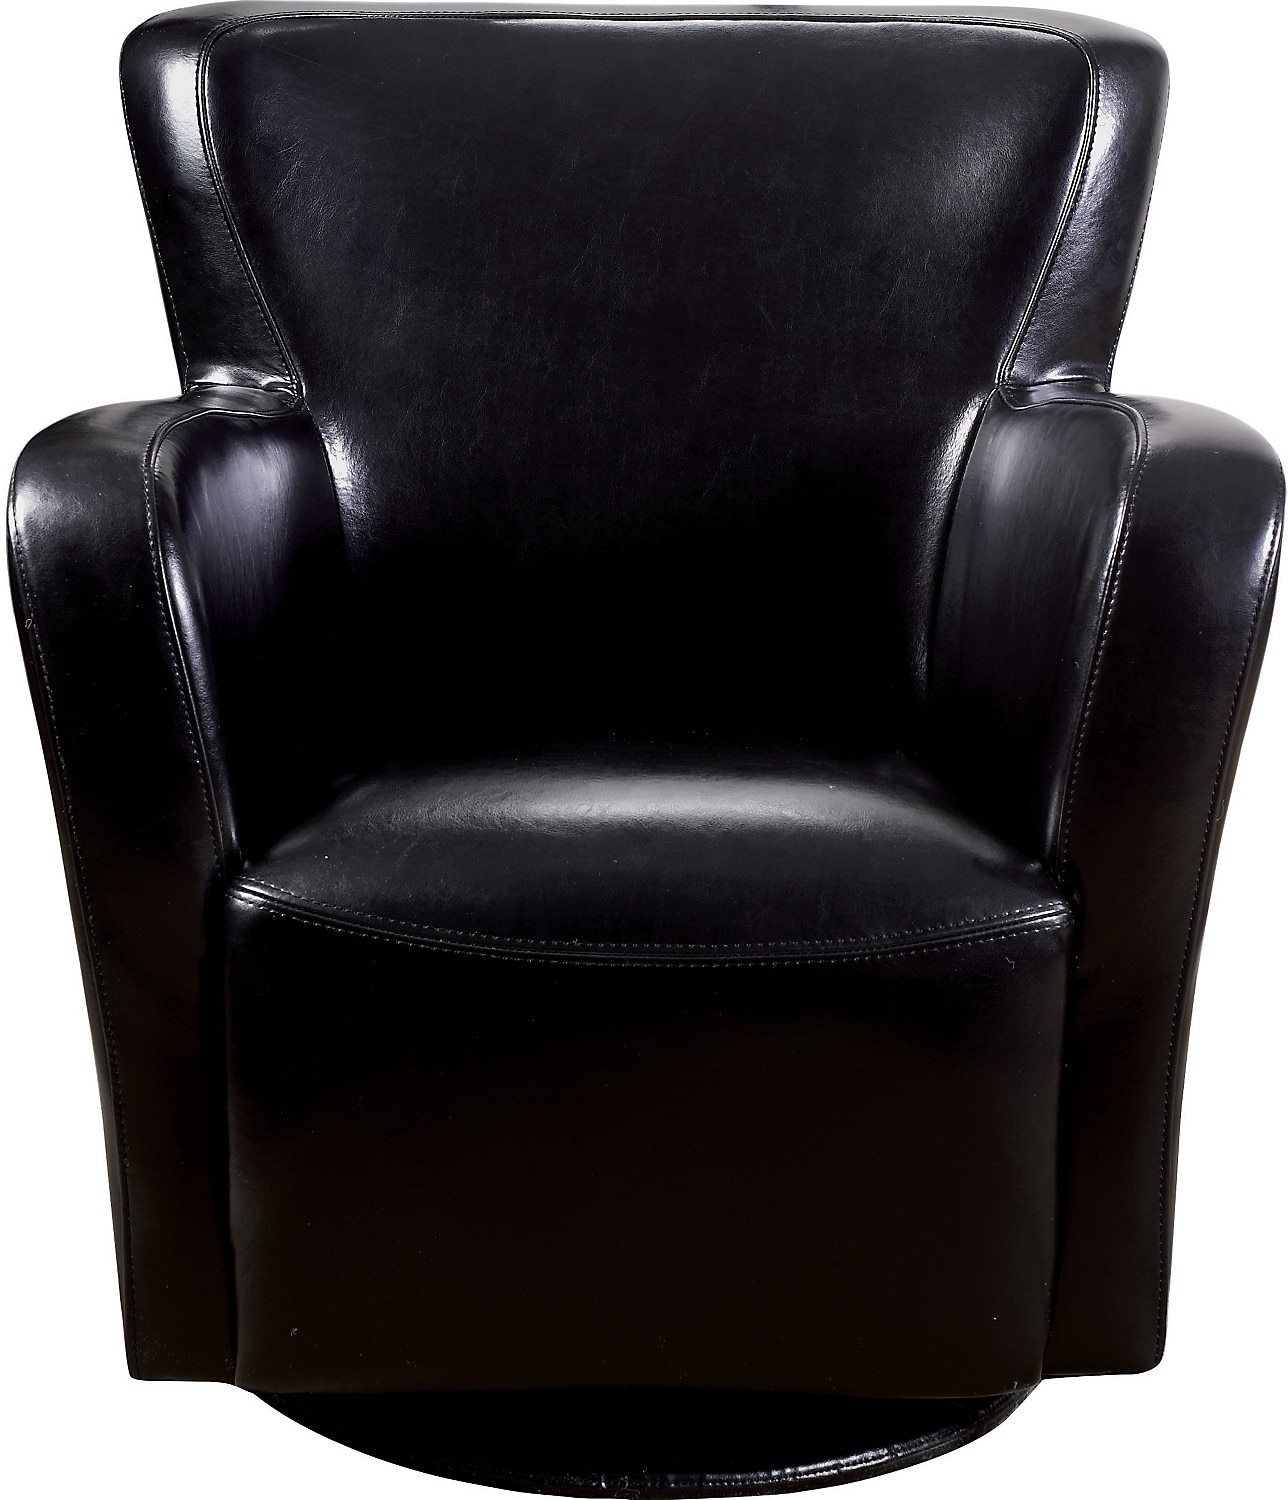 Black Swivel Chair Bonded Leather Swivel Chair Black United Furniture